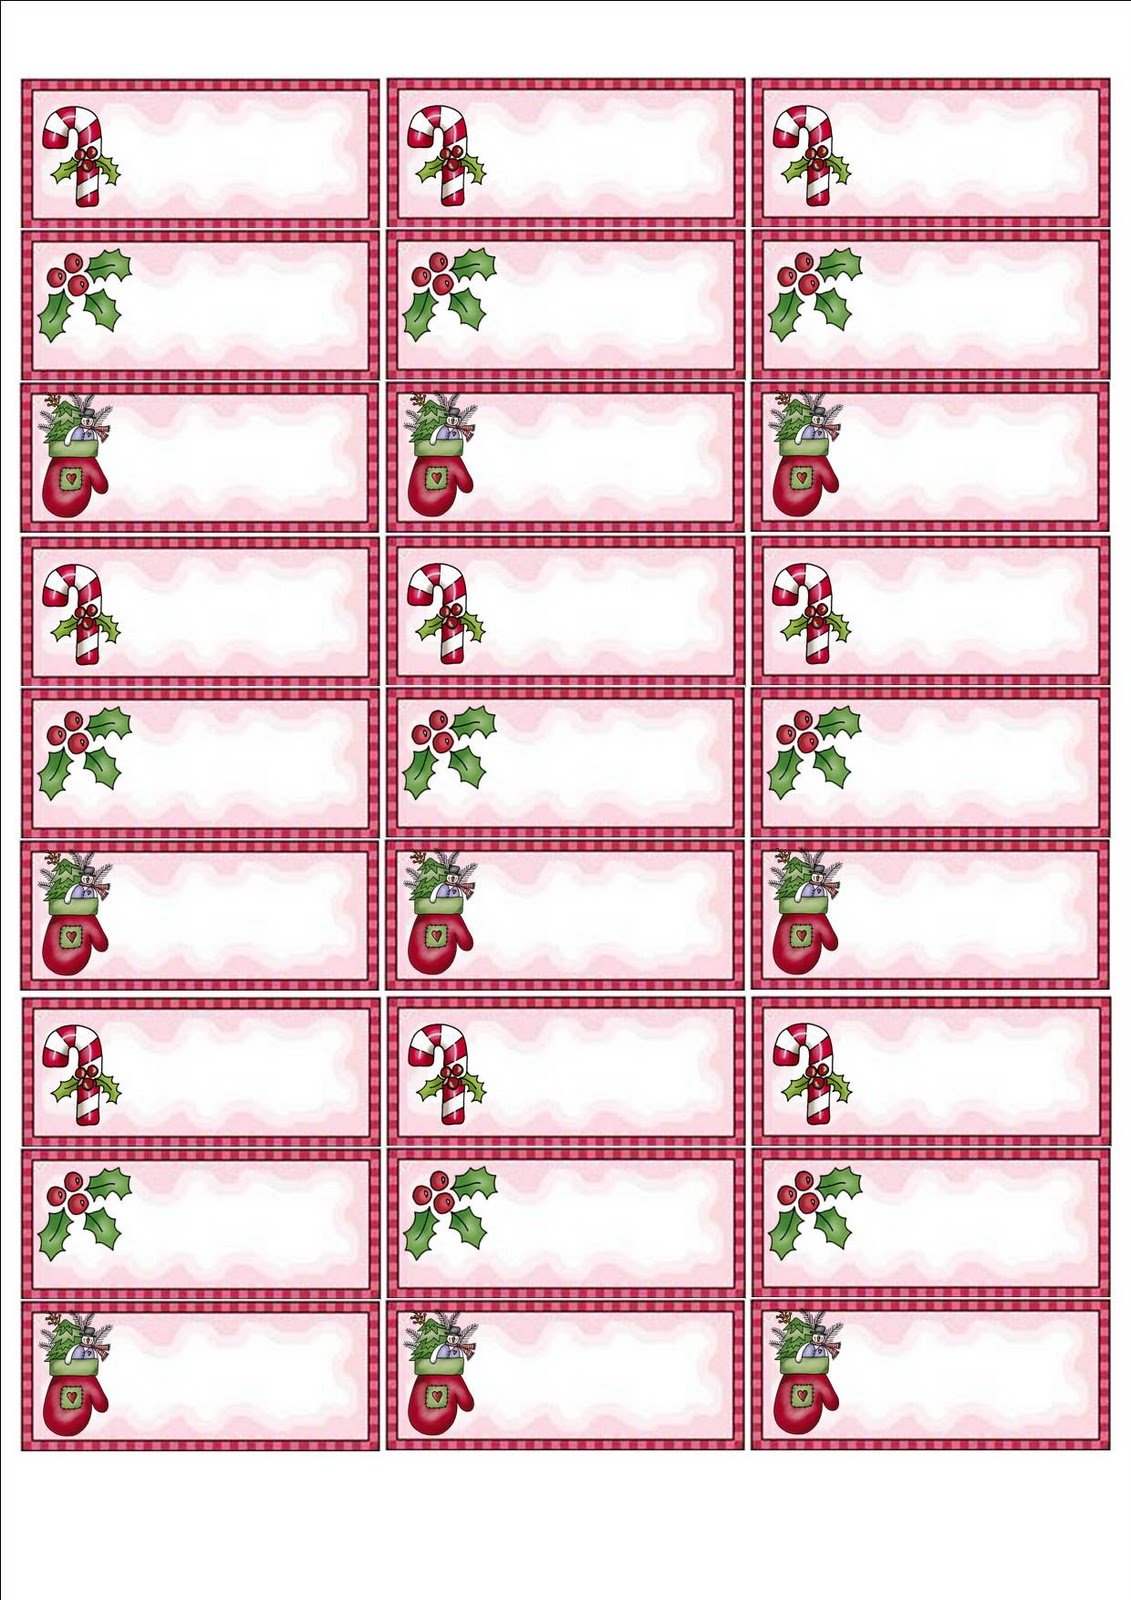 This is an image of Handy Free Printable Address Labels Christmas